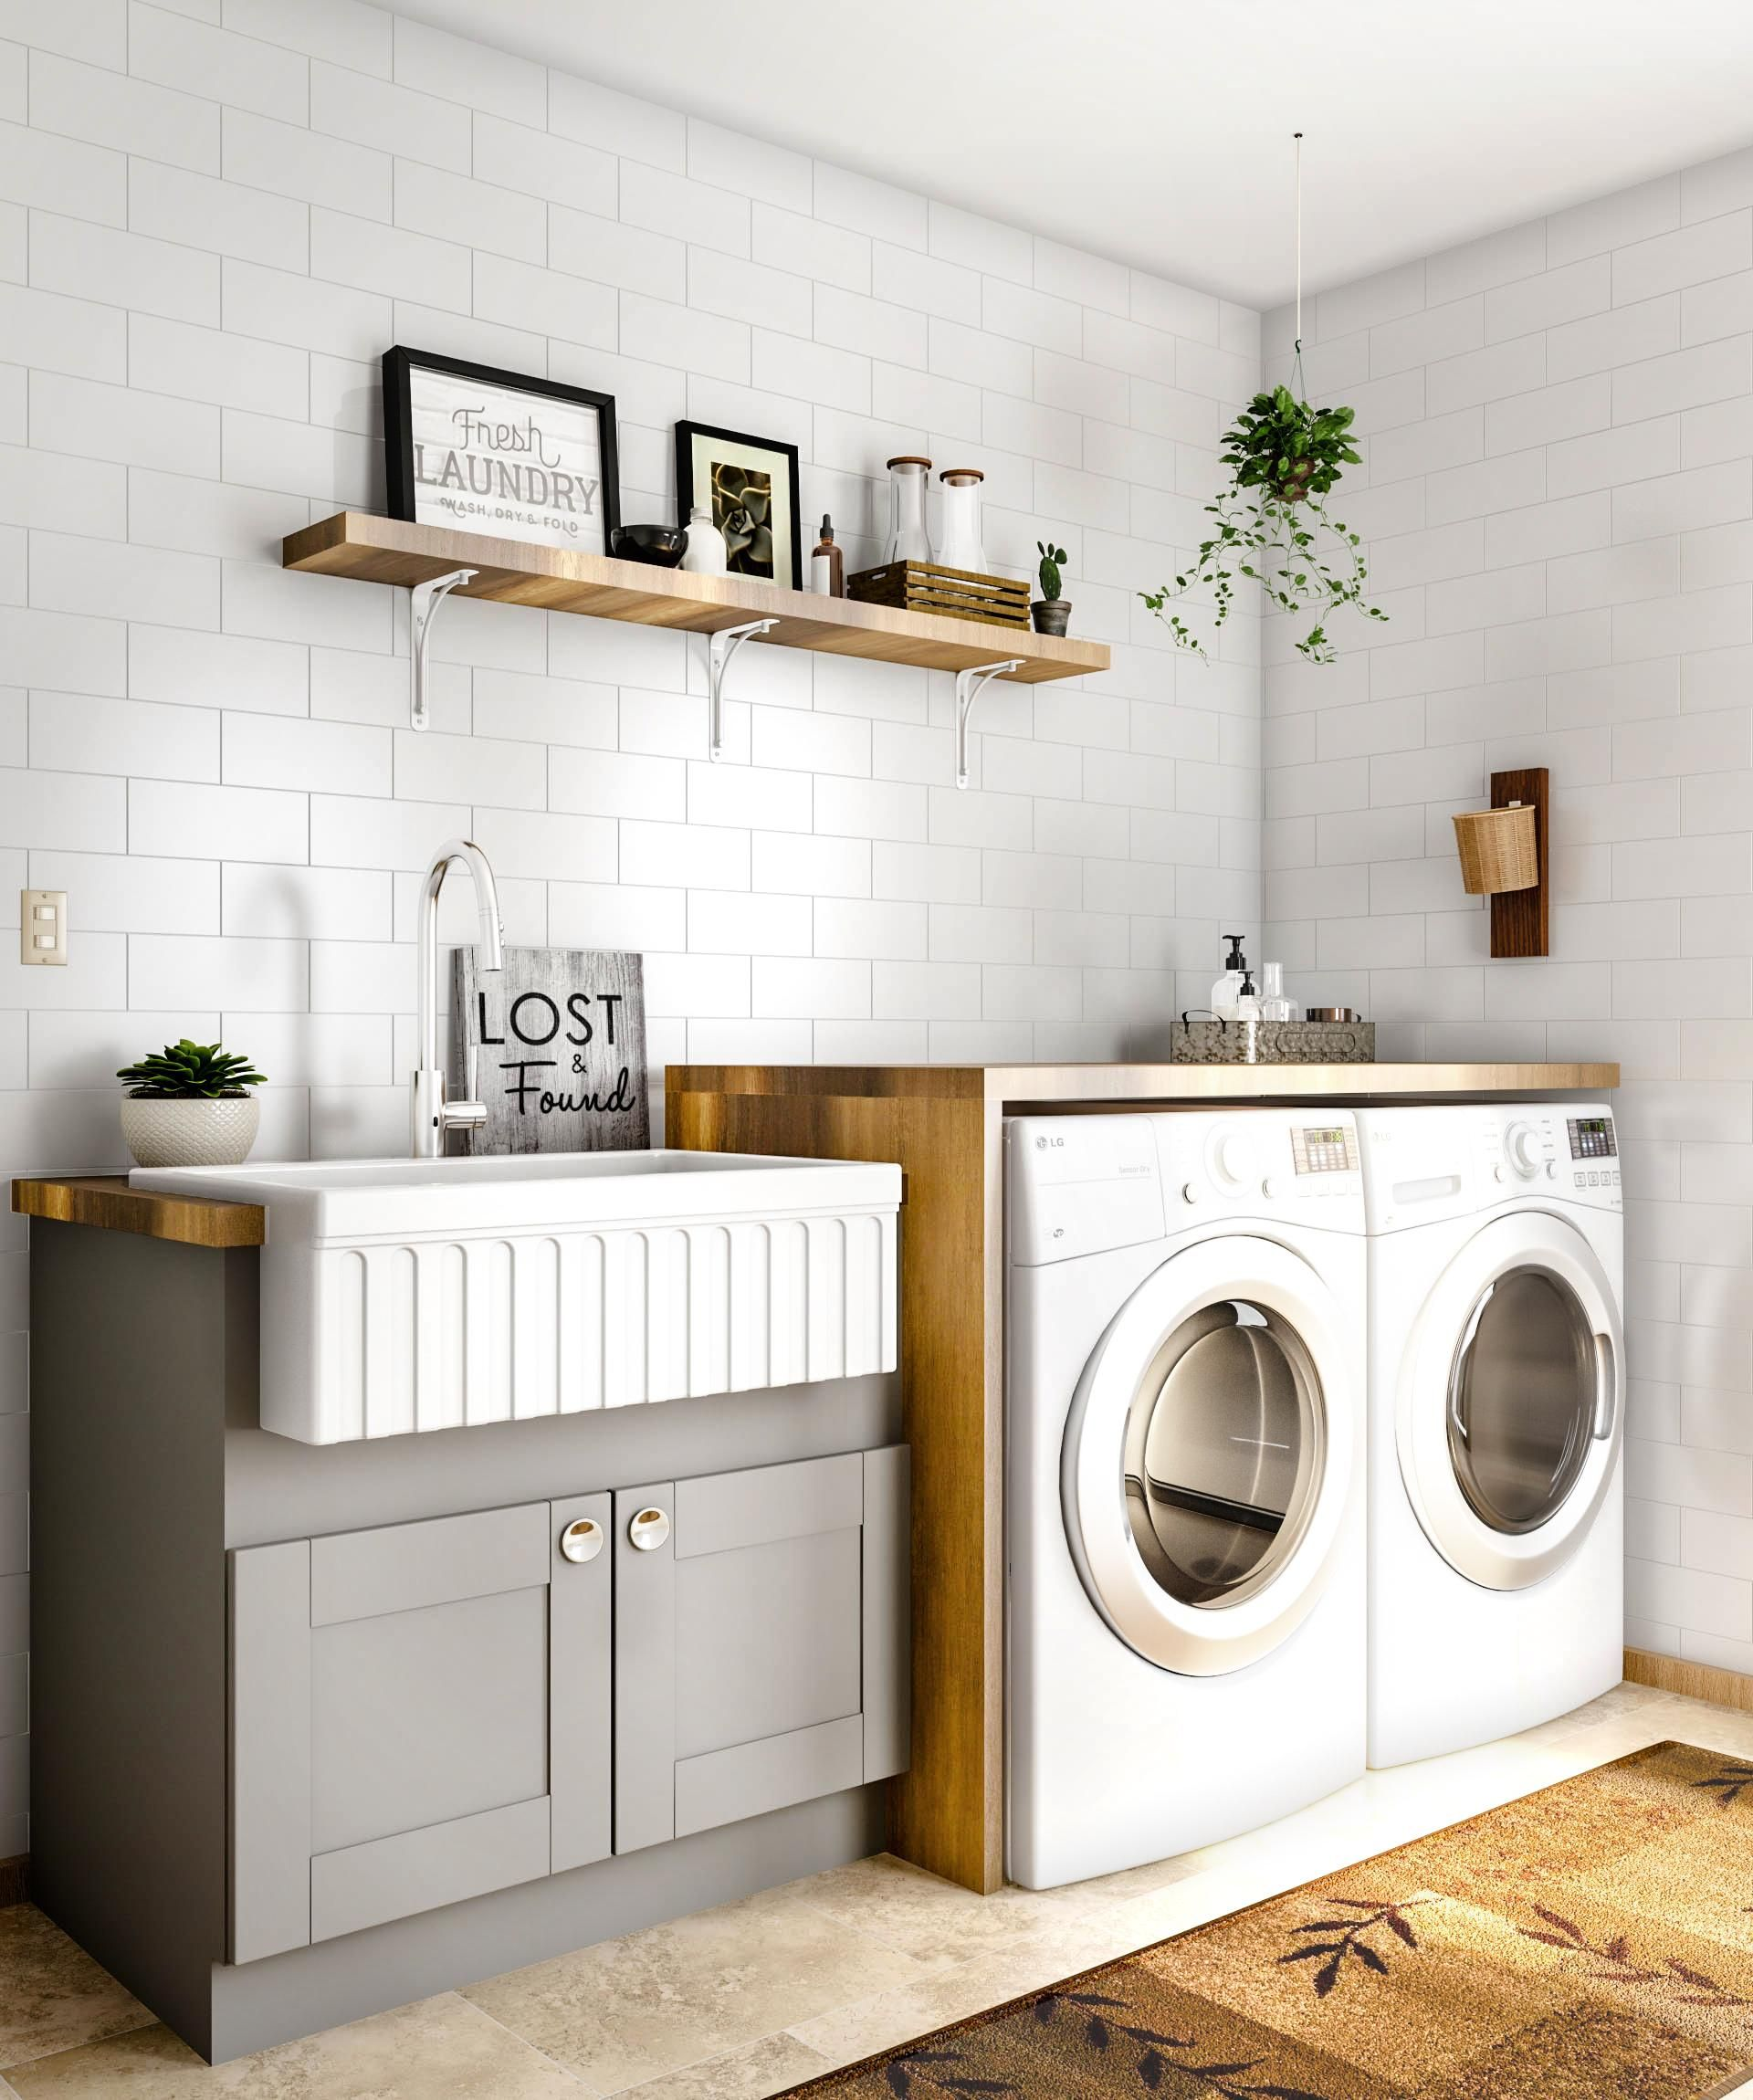 Go For The Extra Details In The Laundry Room That Level Of